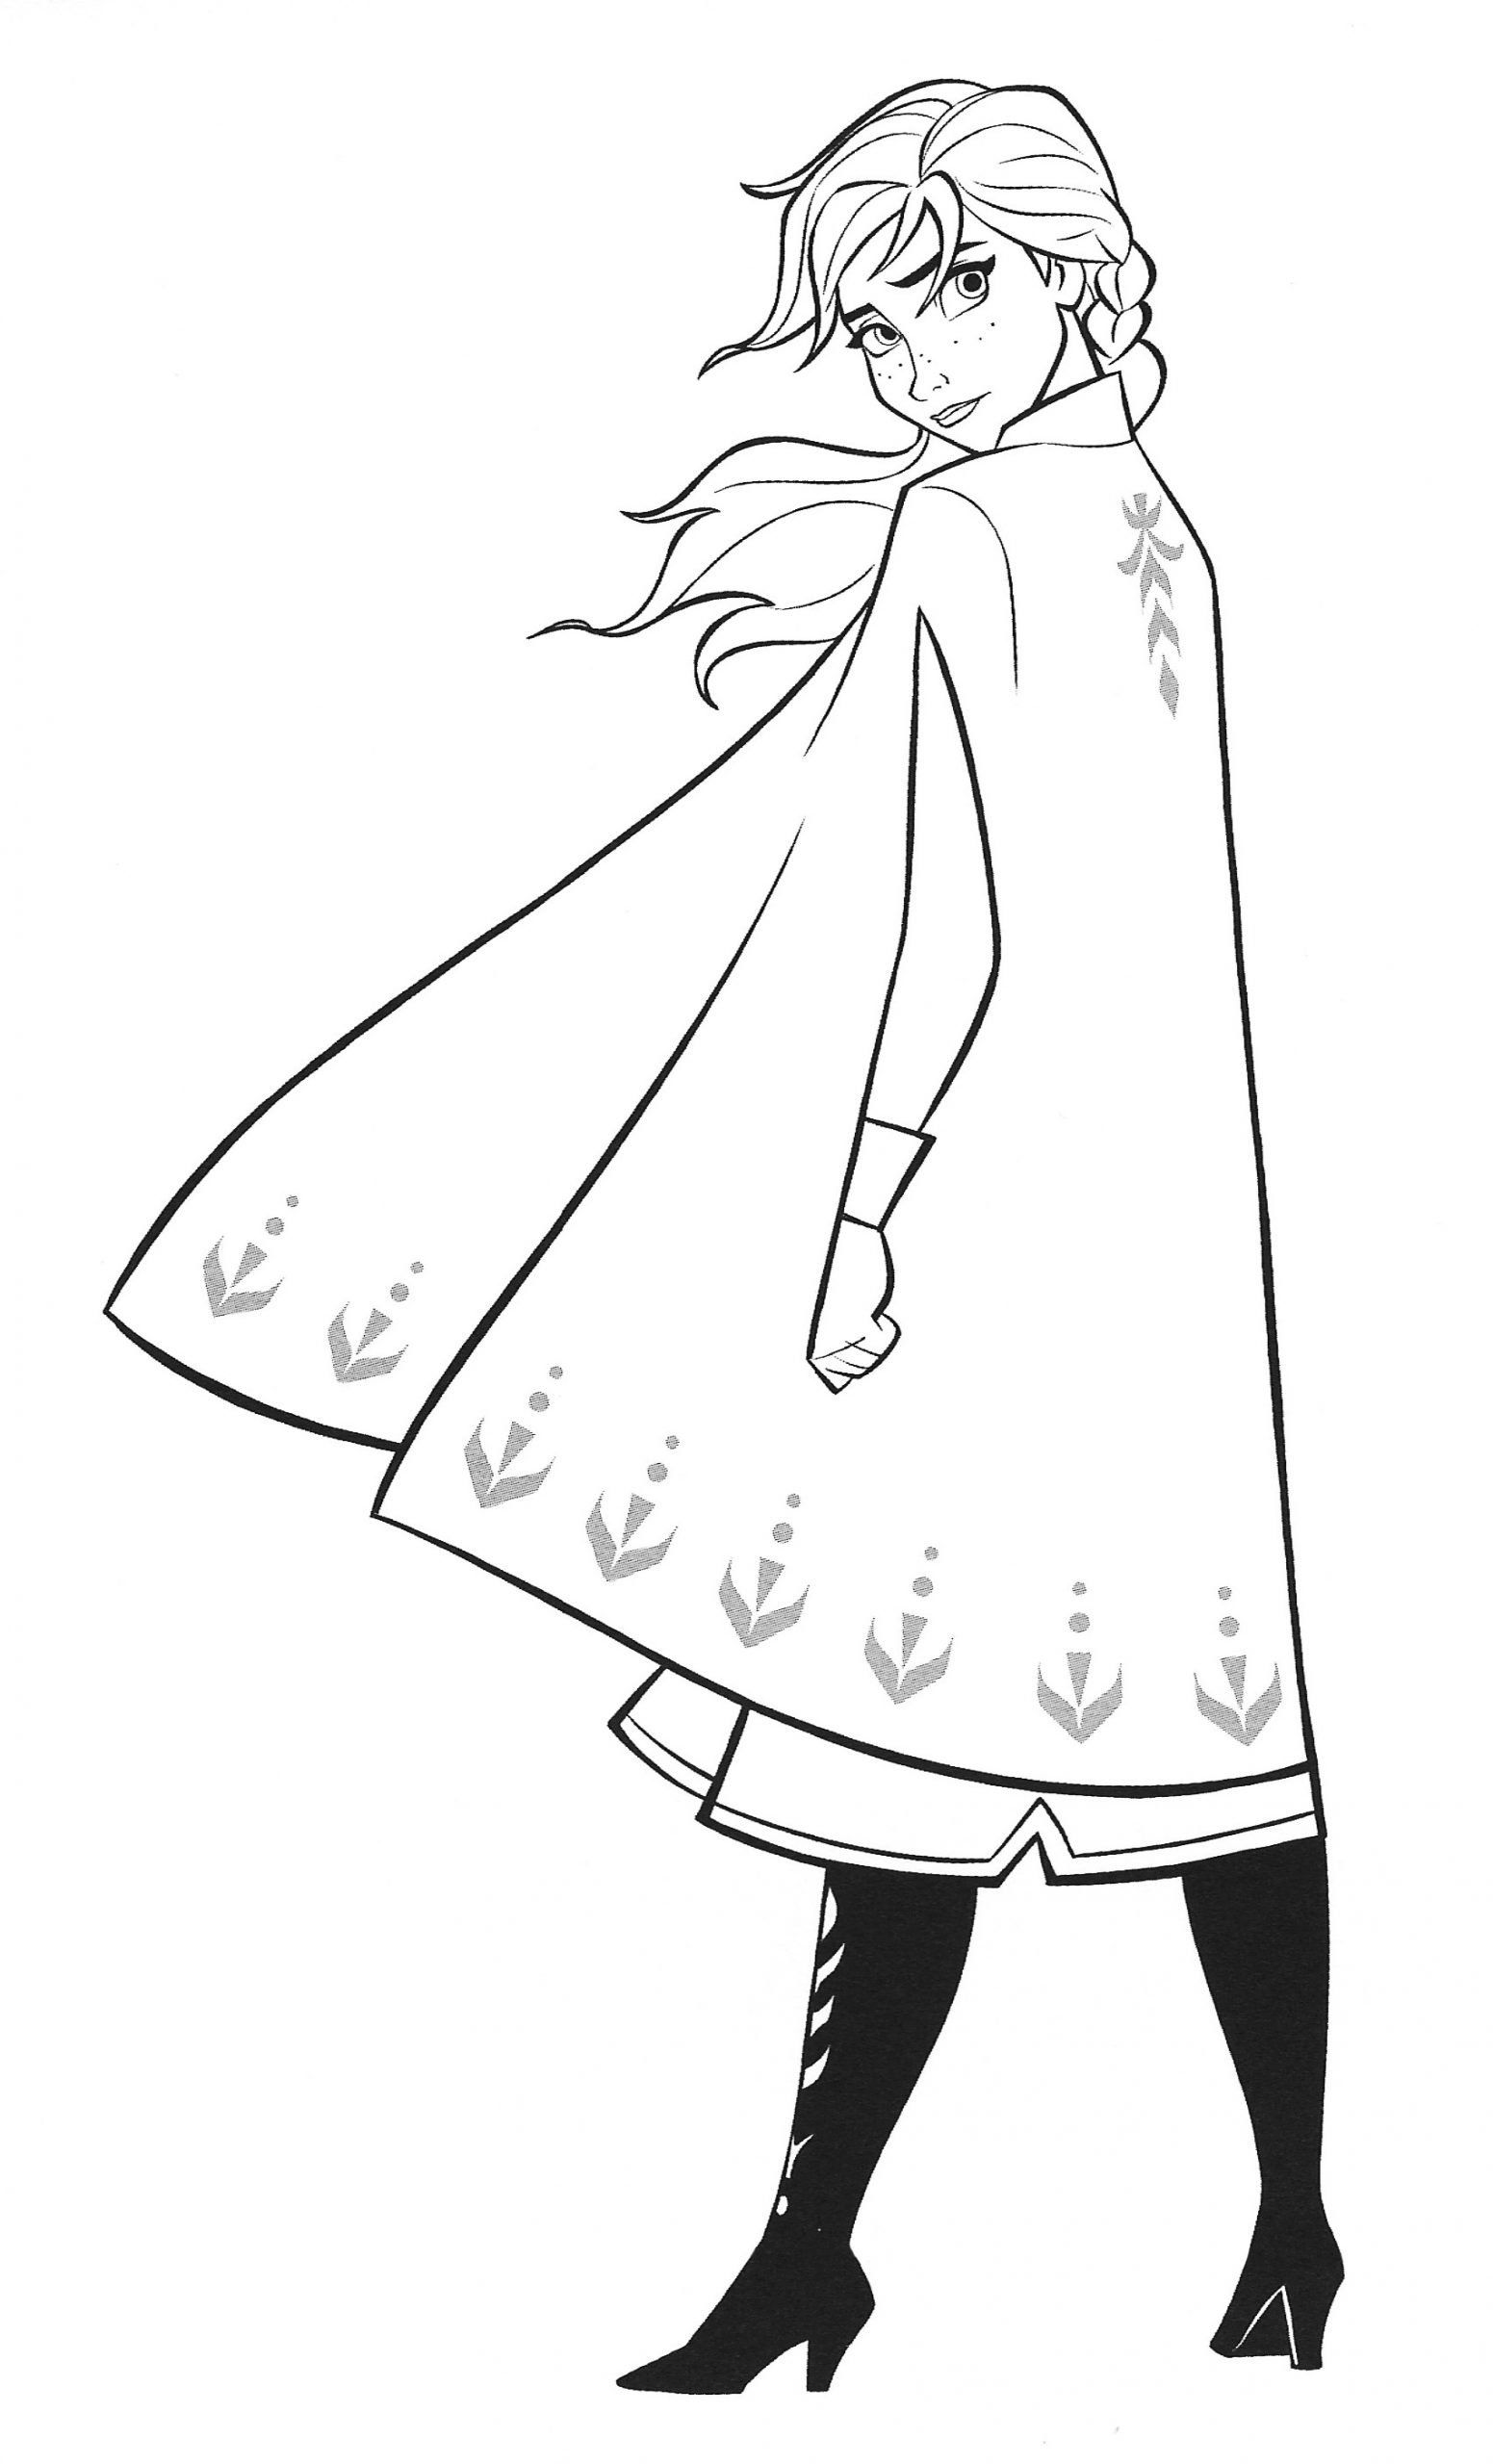 Coloring Pages Elsa And Anna New Frozen 2 Coloring Pages With Anna Youloveit Frozen Drawings Cartoon Coloring Pages Coloring Pages